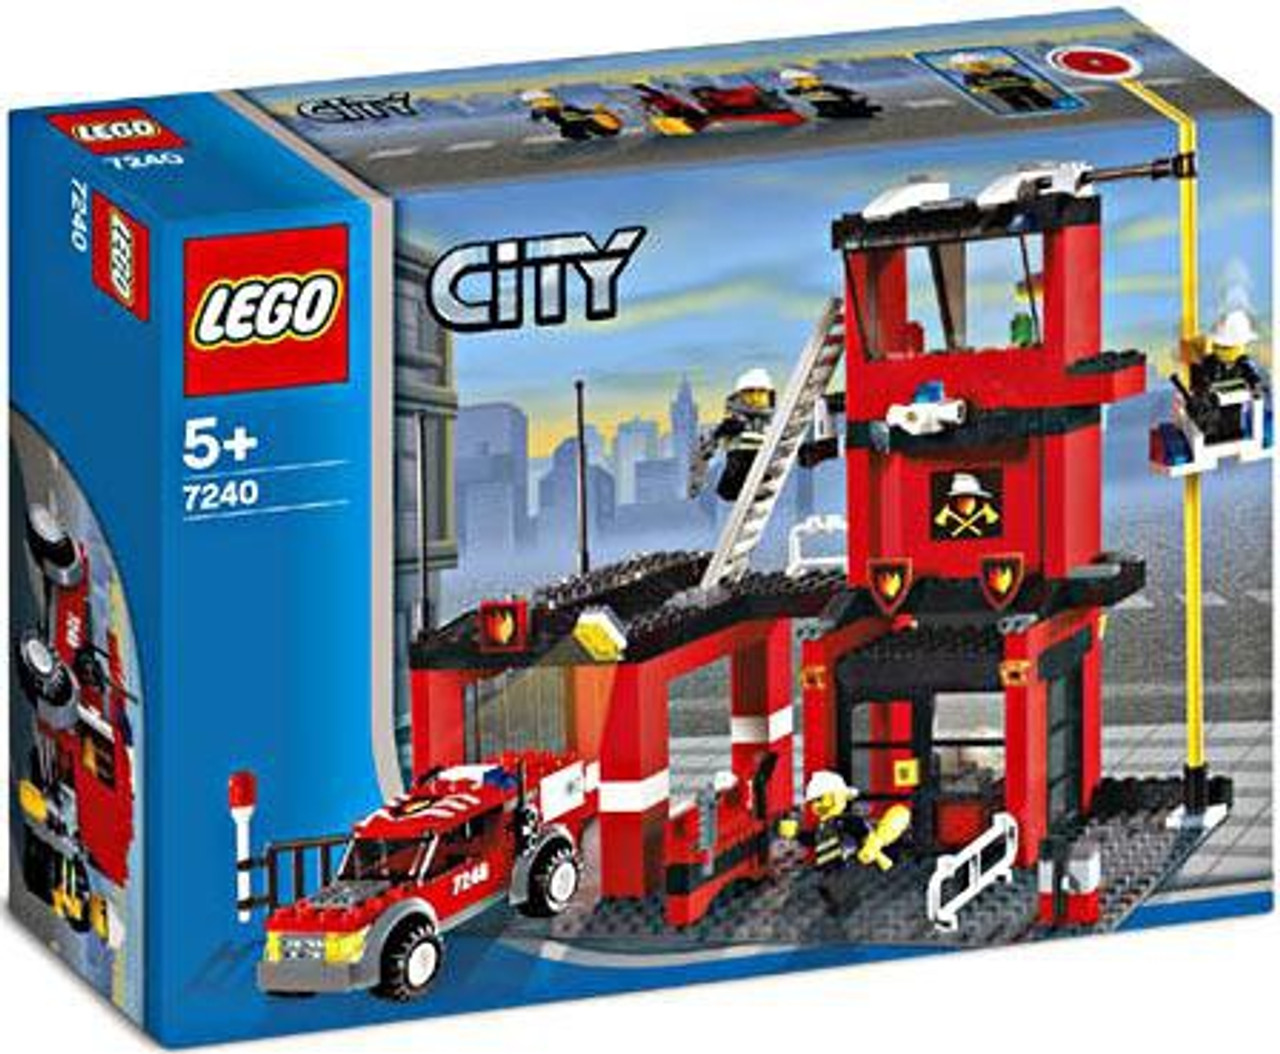 LEGO City Fire Station Set #7240